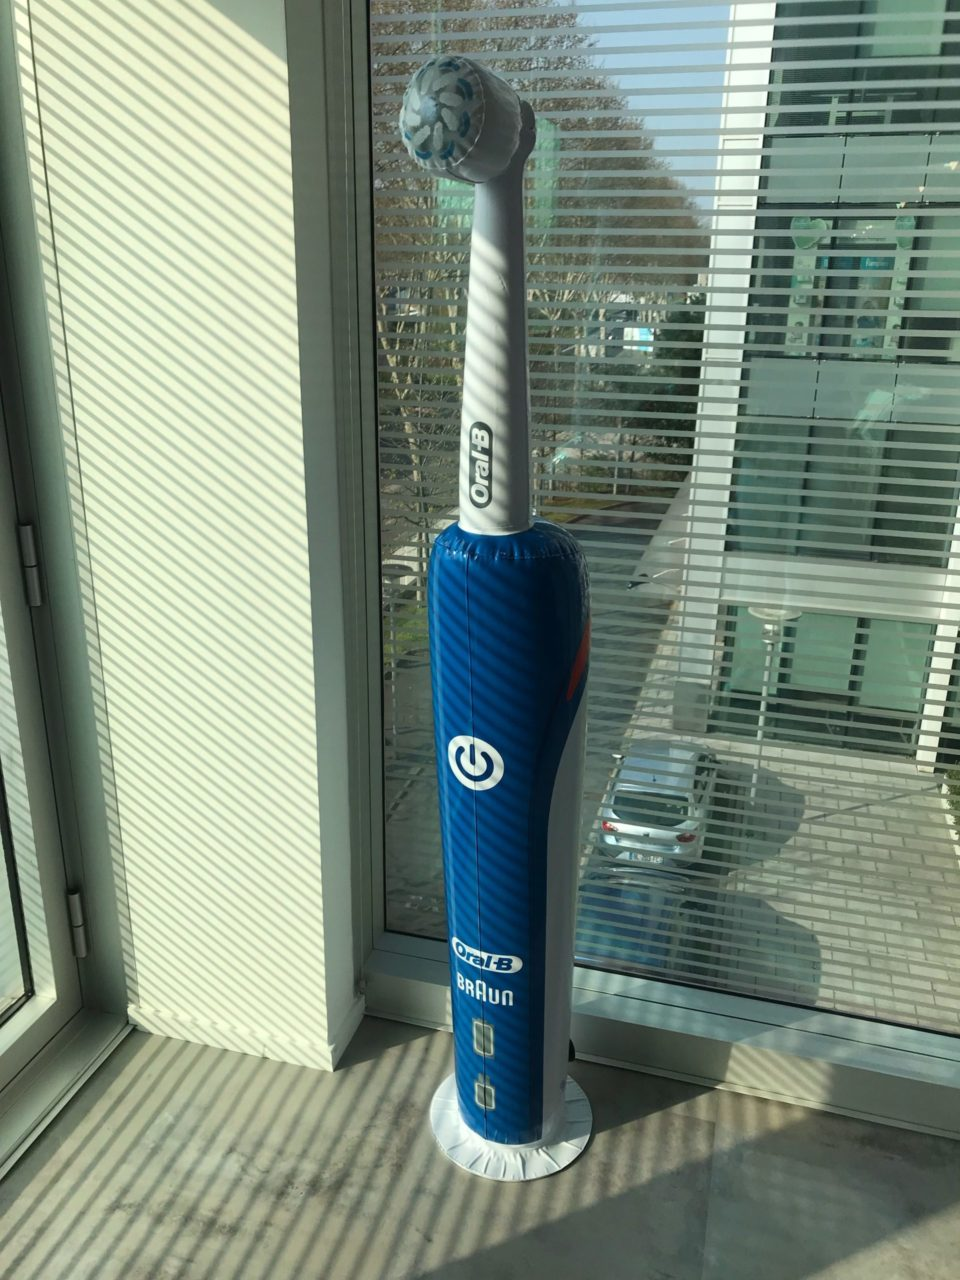 PLV gonflables : brosse à dent Oral B : packaging gonflable Procter & Gamble